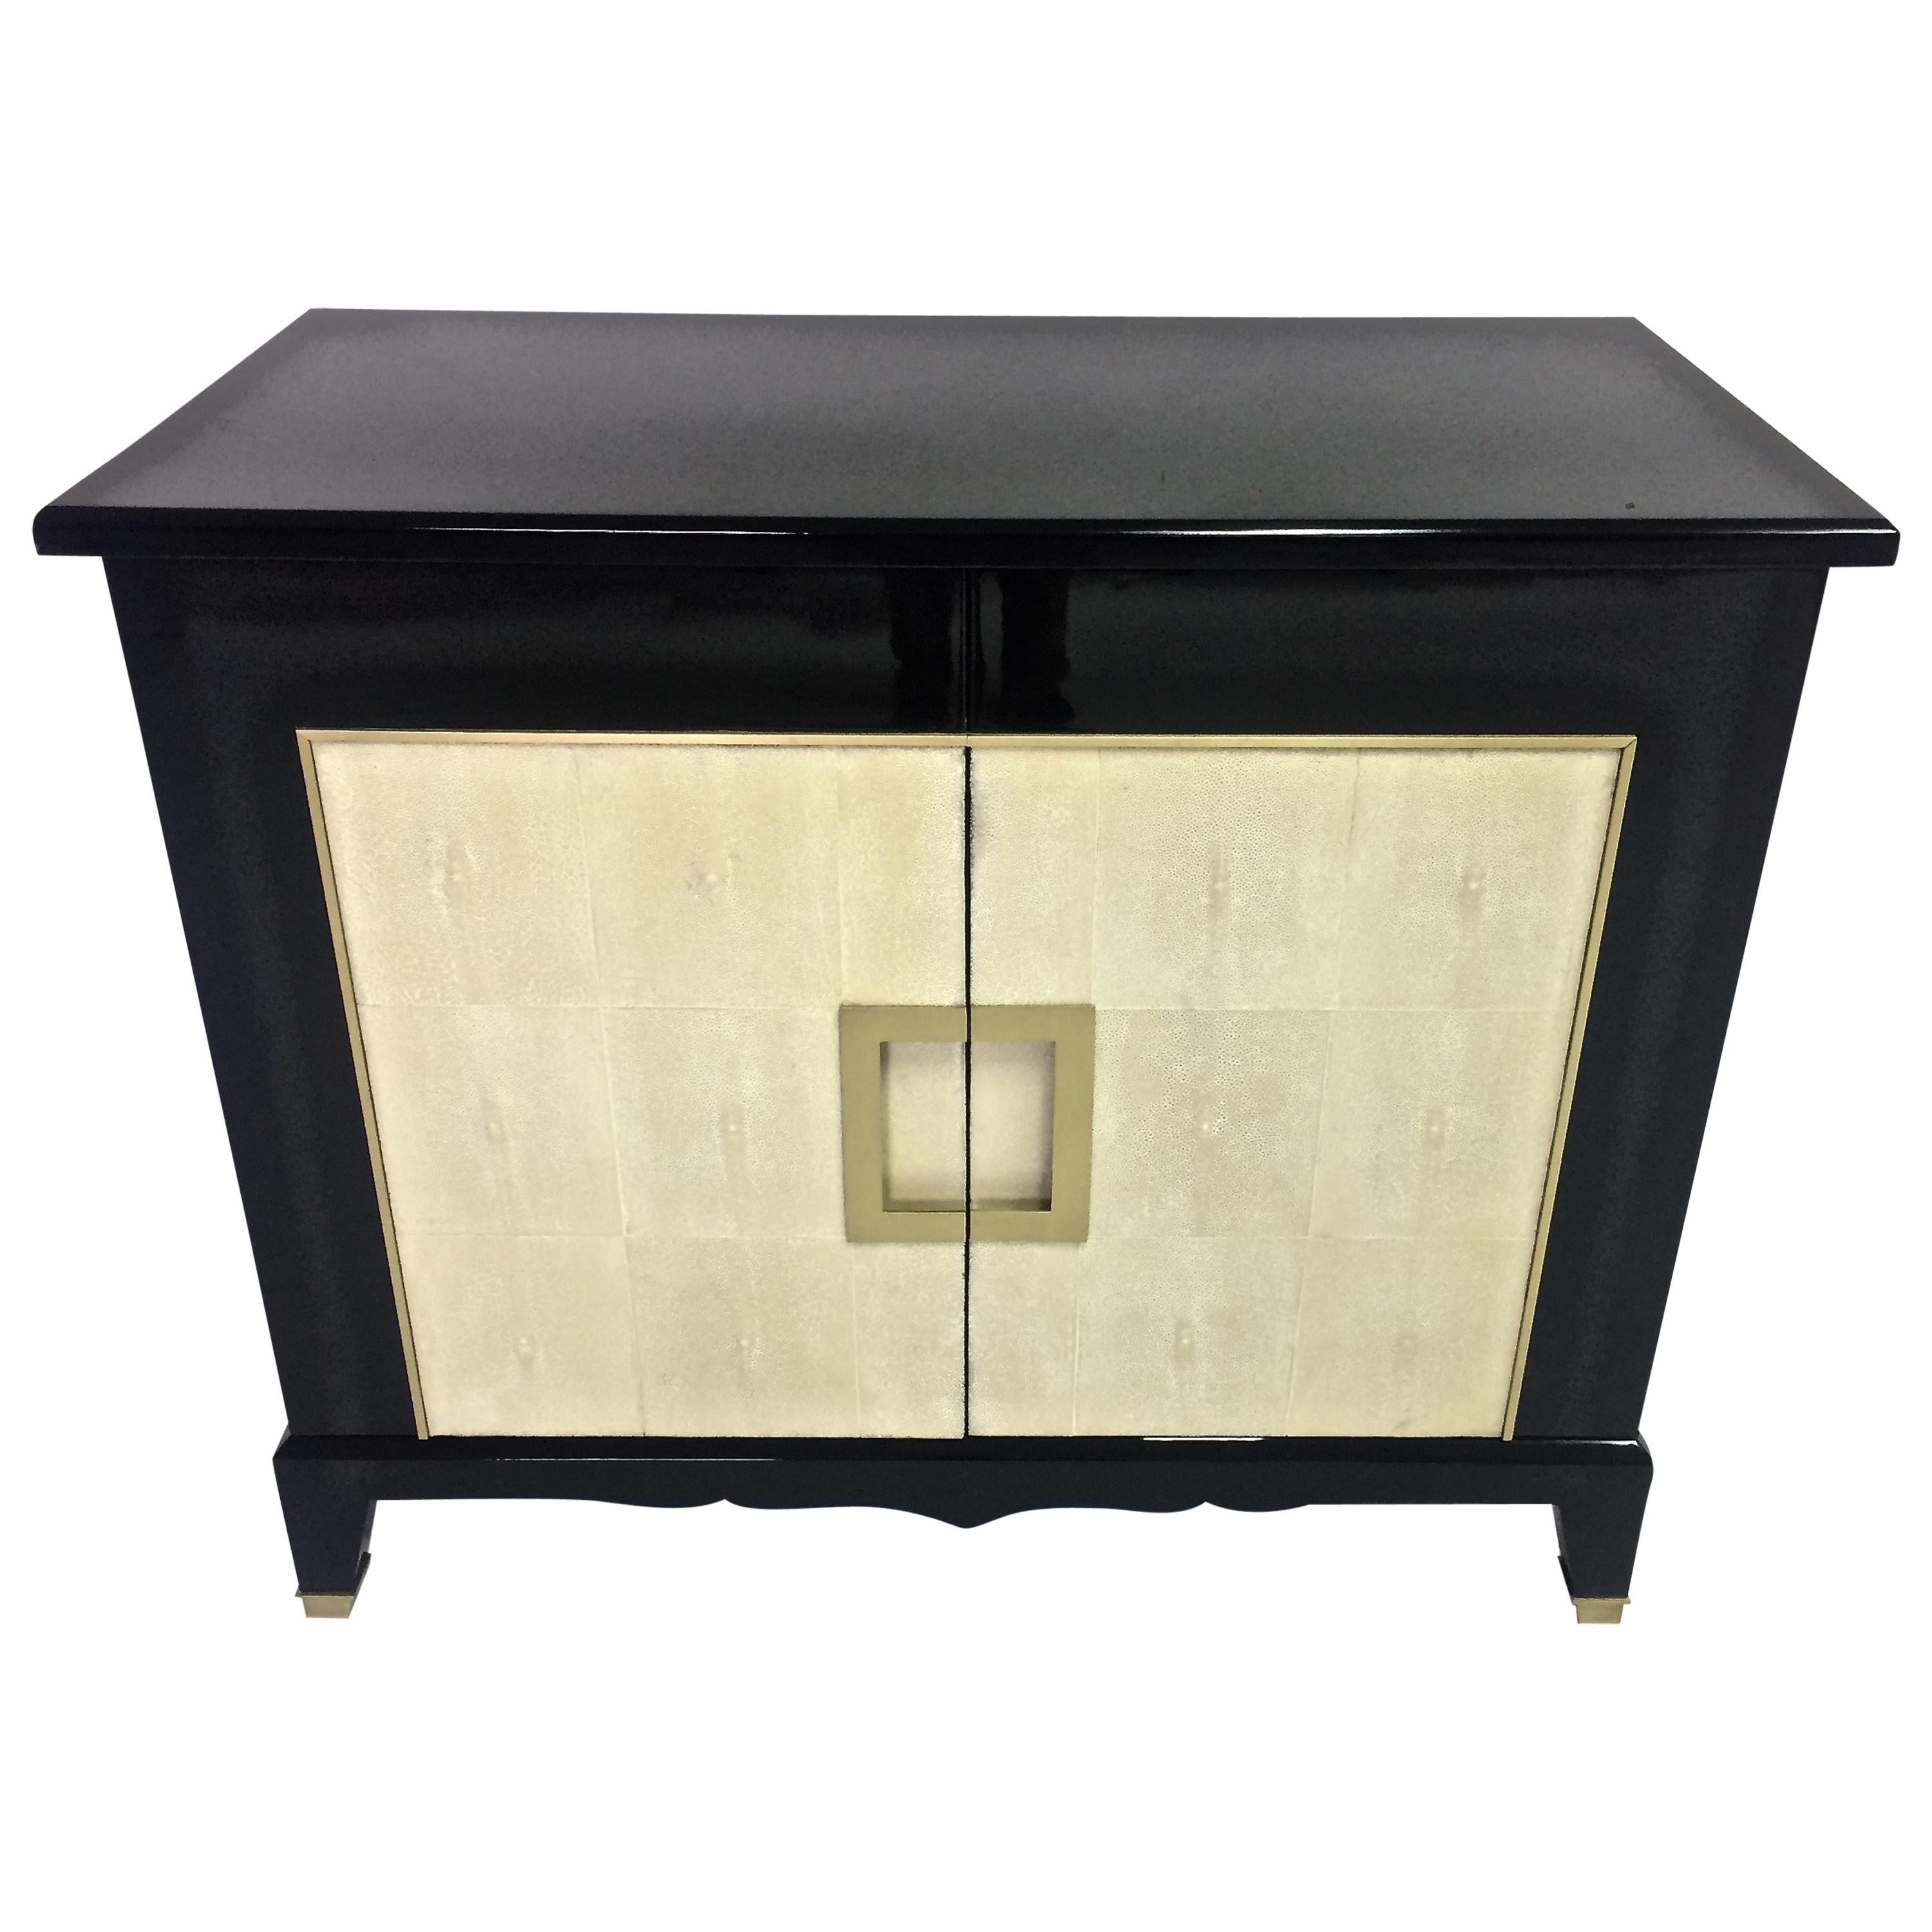 Art deco black lacquer and shagreen cabinet in stock for sale at 1stdibs